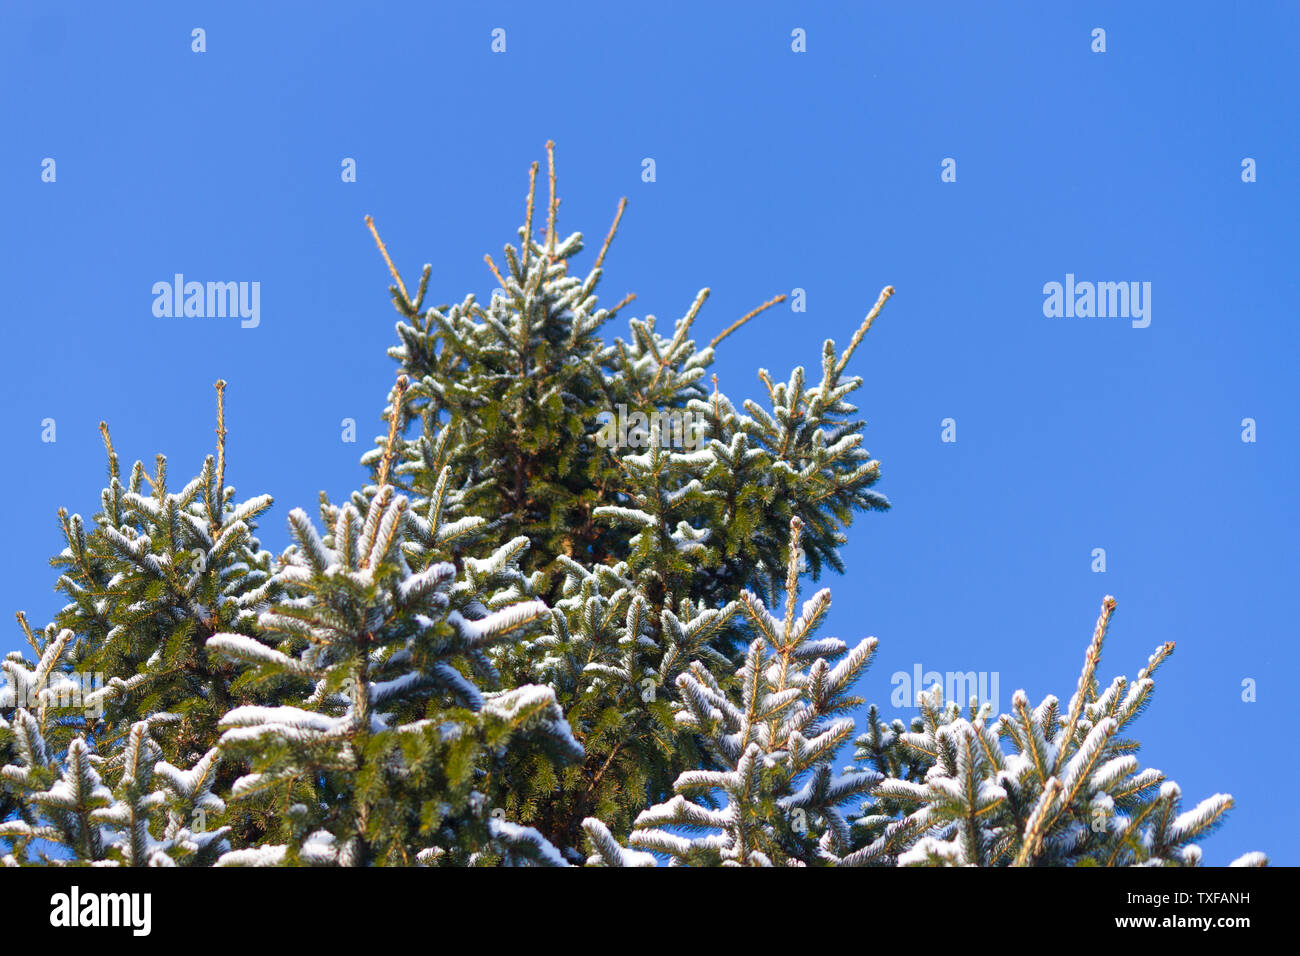 Winter background, close up of frosted pine branch covered with snow - Stock Image